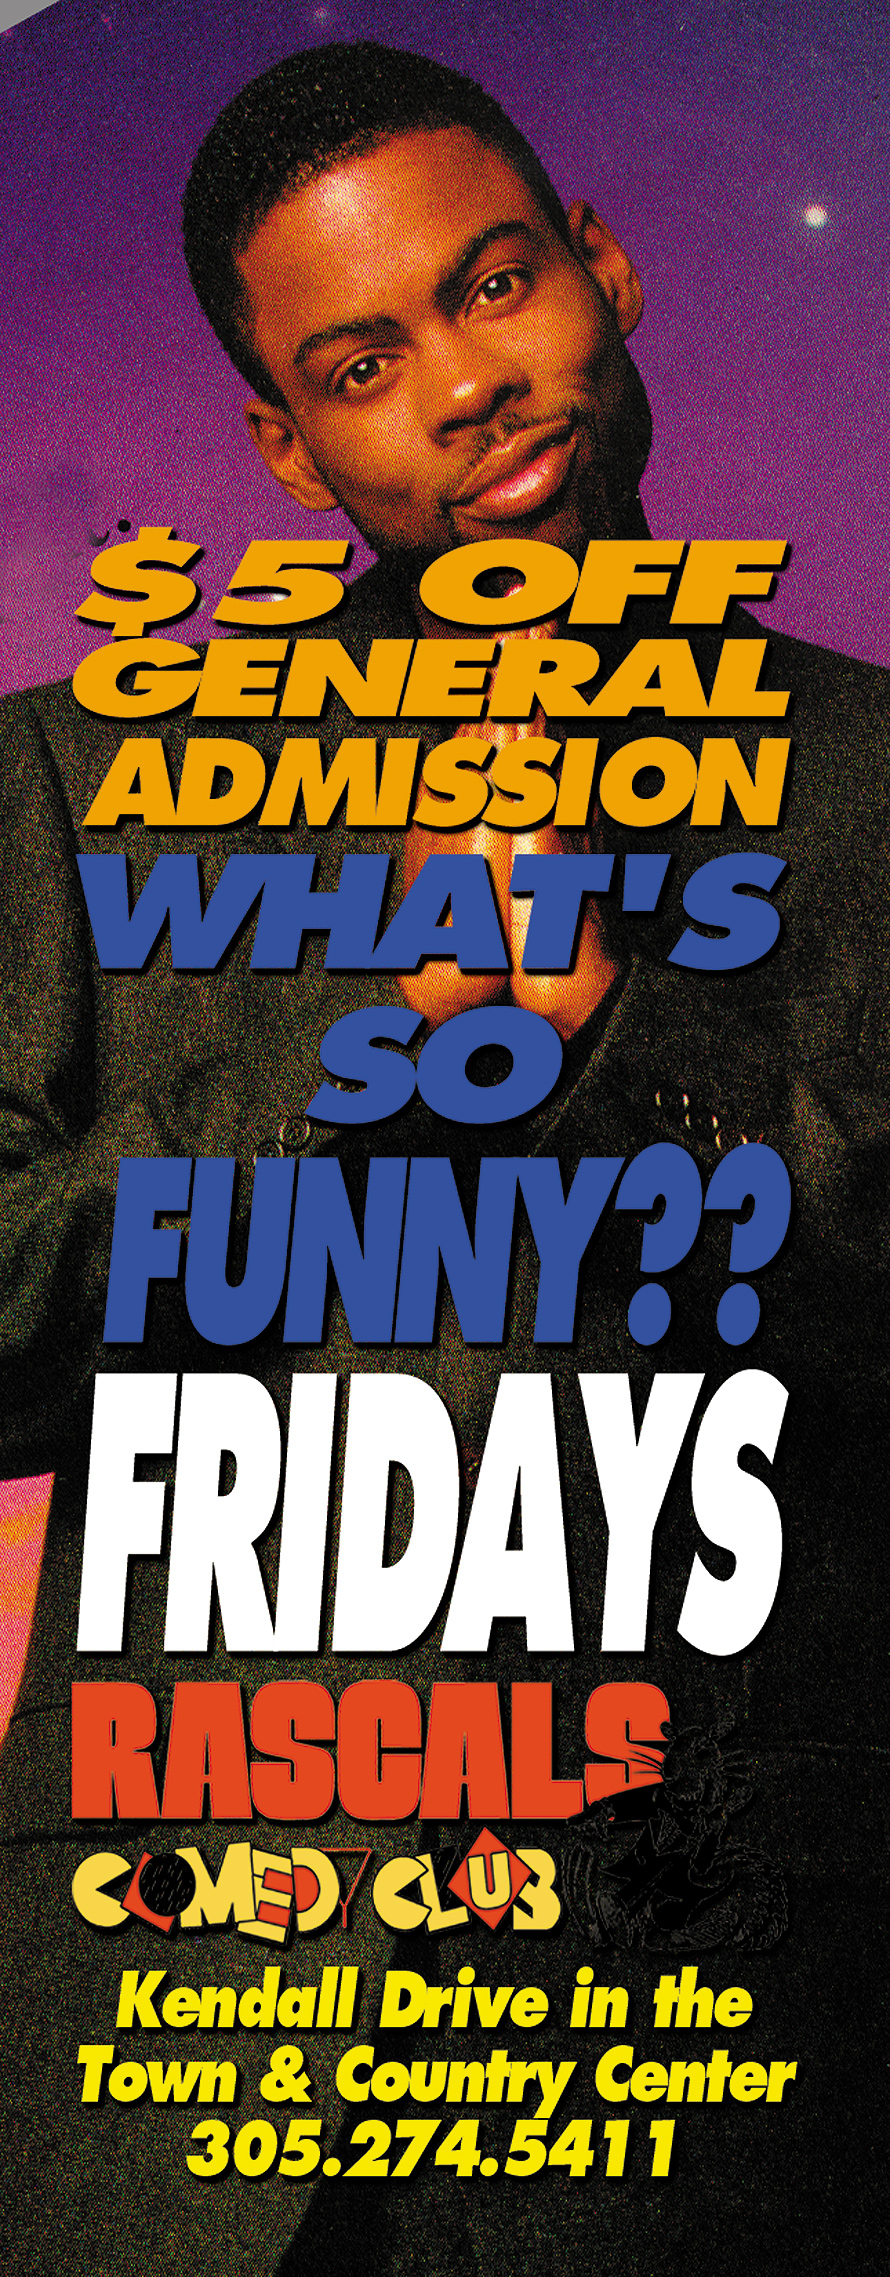 What's So Funny Event at Rascals Comedy Club